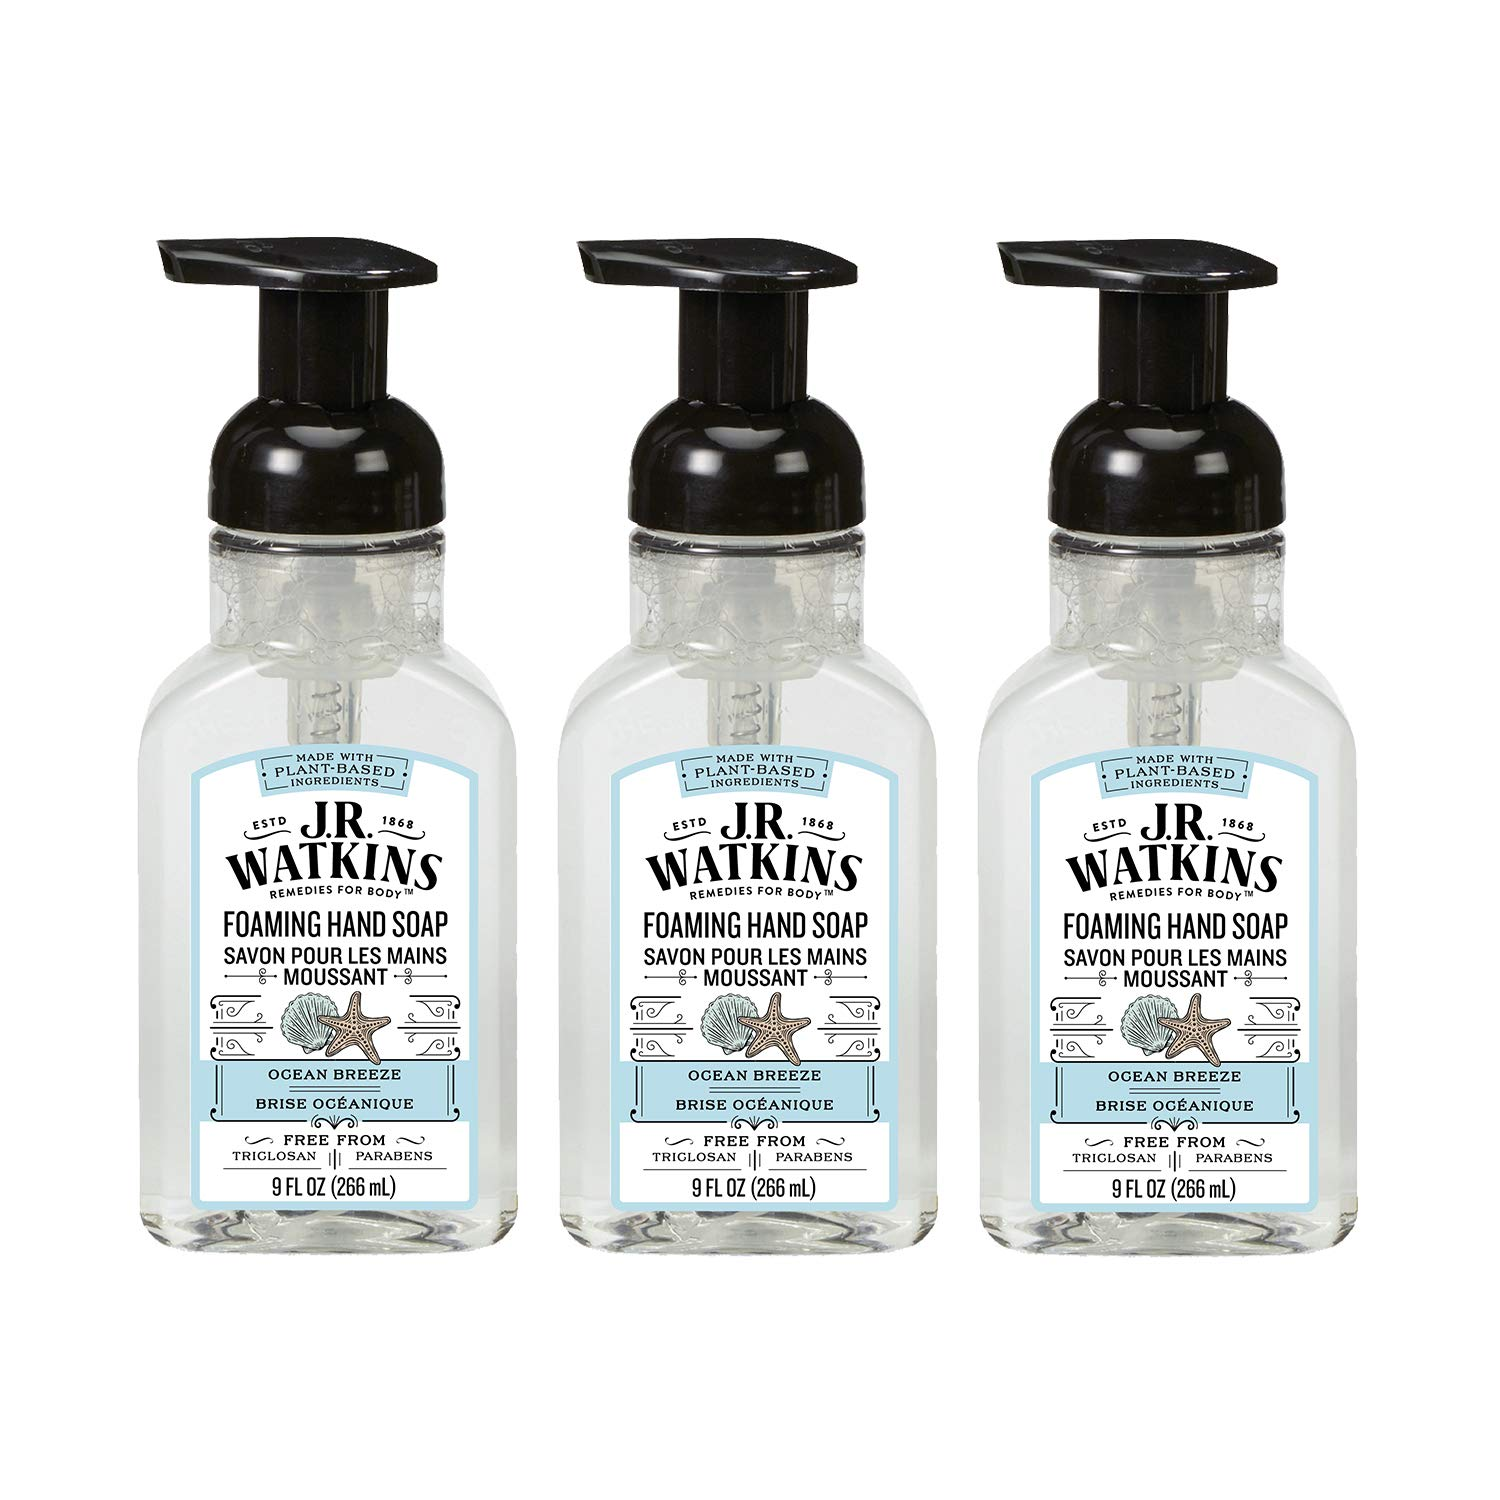 J.R. Watkins Foaming Hand Soap, Ocean Breeze, 3 Pack, Scented Foam Handsoap For Bathroom or Kitchen, USA Made And Cruelty Free, 9 Fl Oz by J.R. Watkins